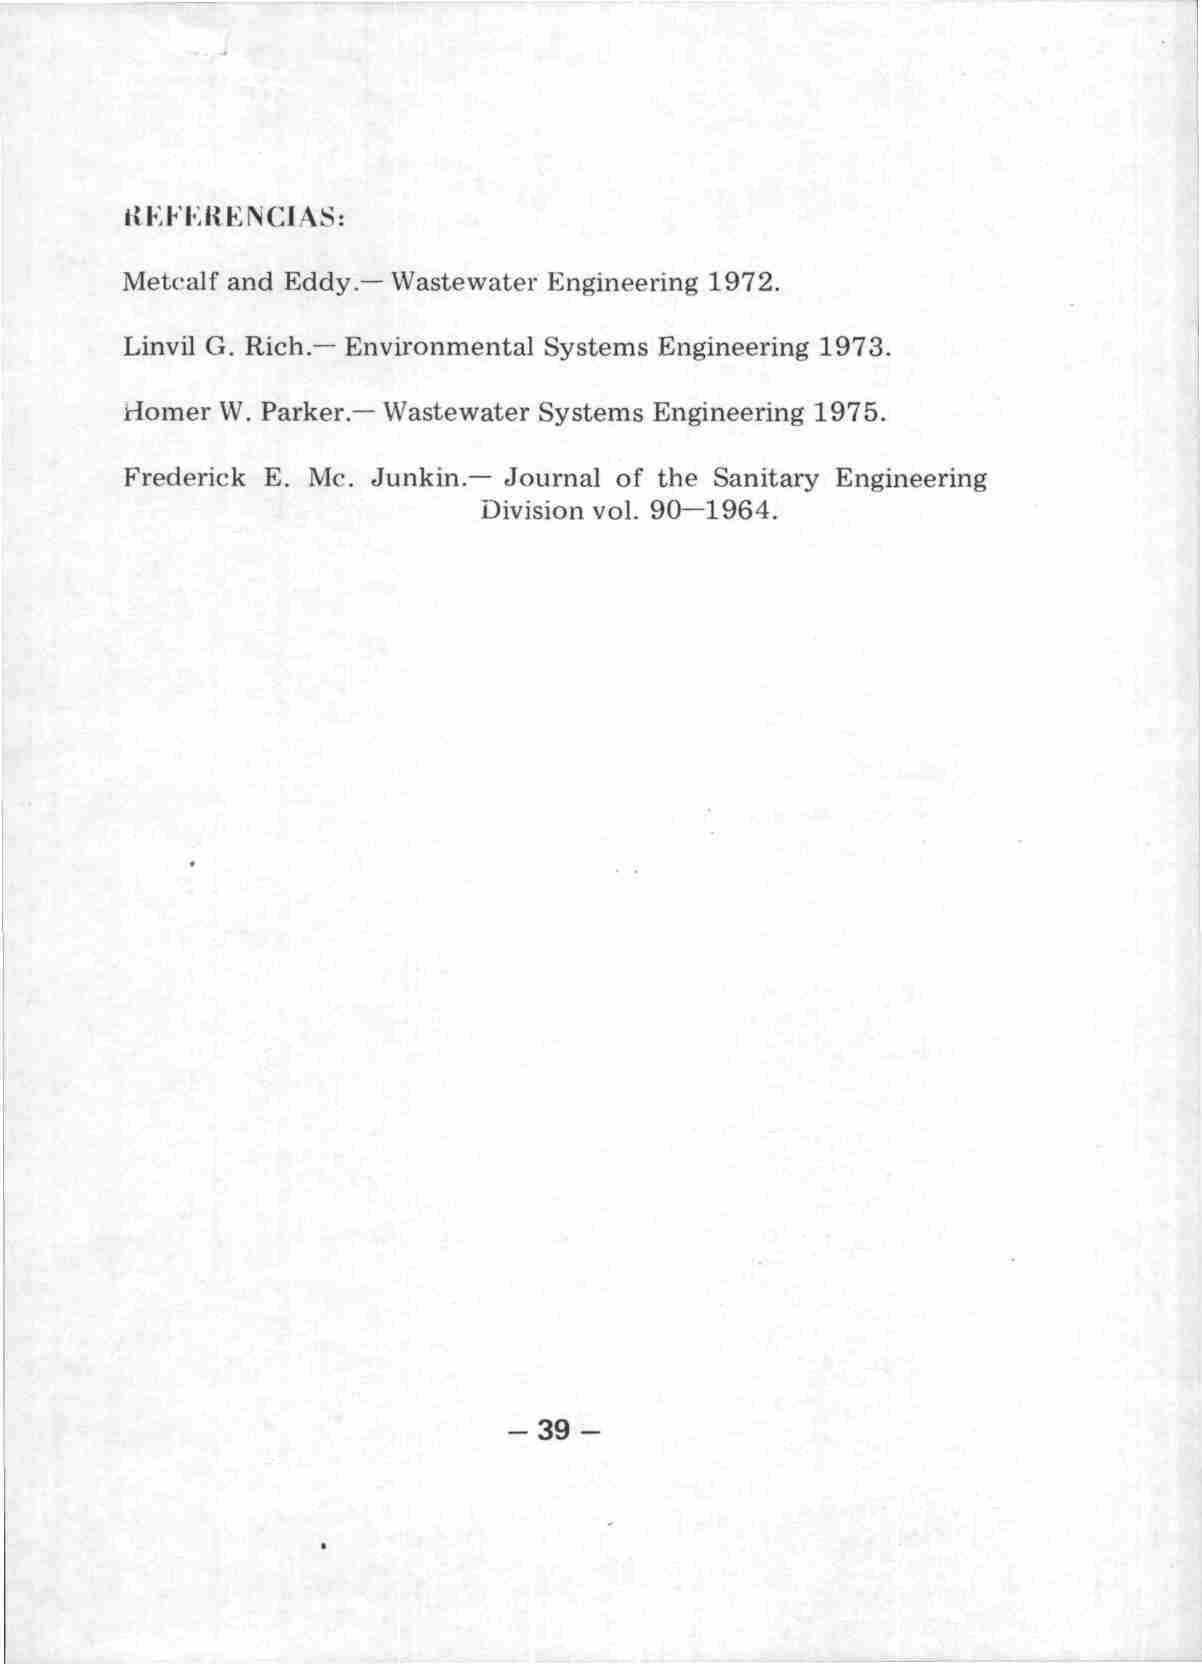 DEFERENCIAS: Metcalf and Eddy. Wastewater Engineering 1972. Linvil G. Rich. Environmental Systems Engineering 1973. Homer W.